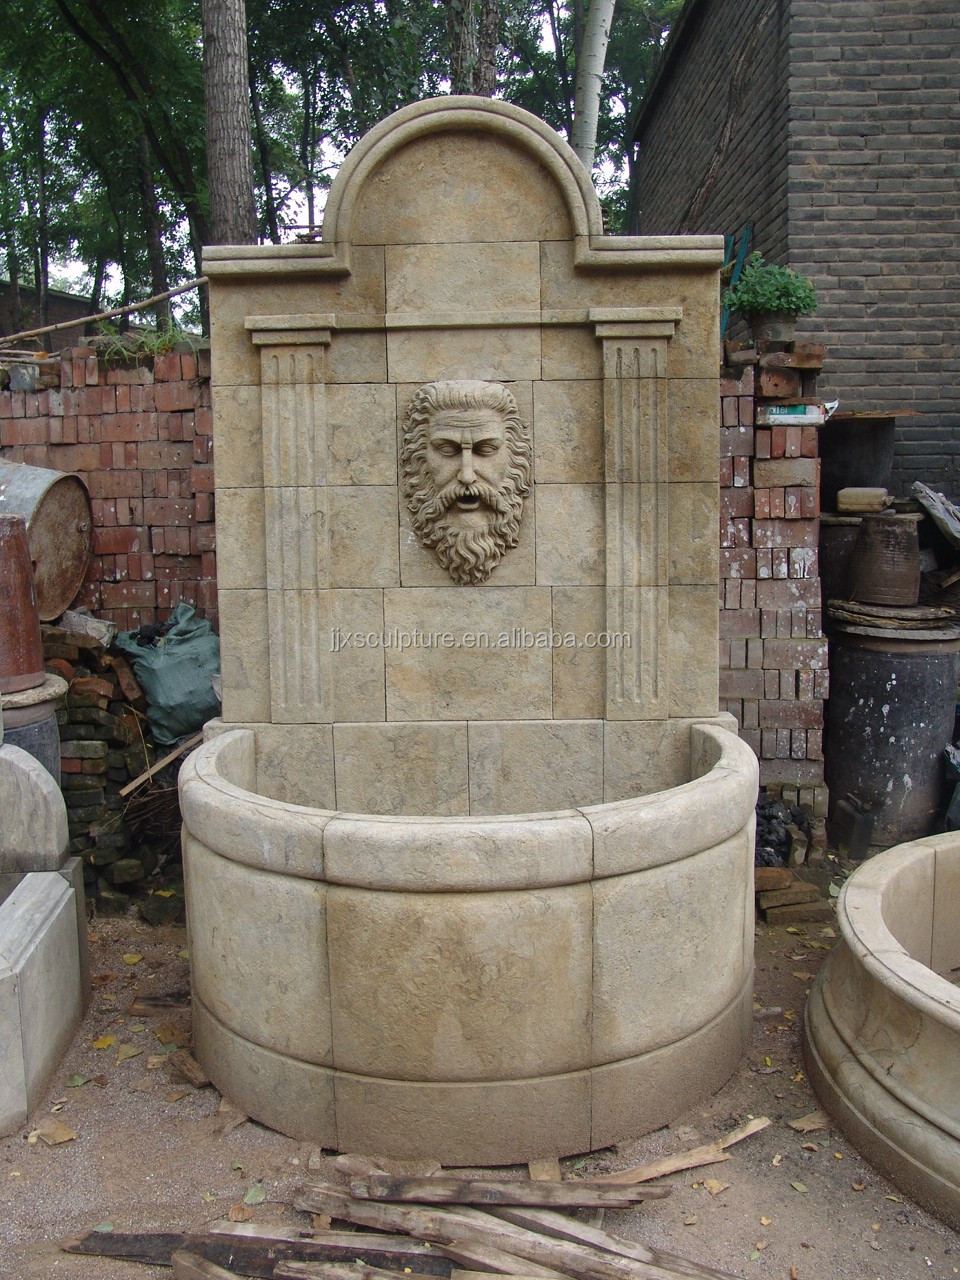 Antique Wall Water Fountain For Sale